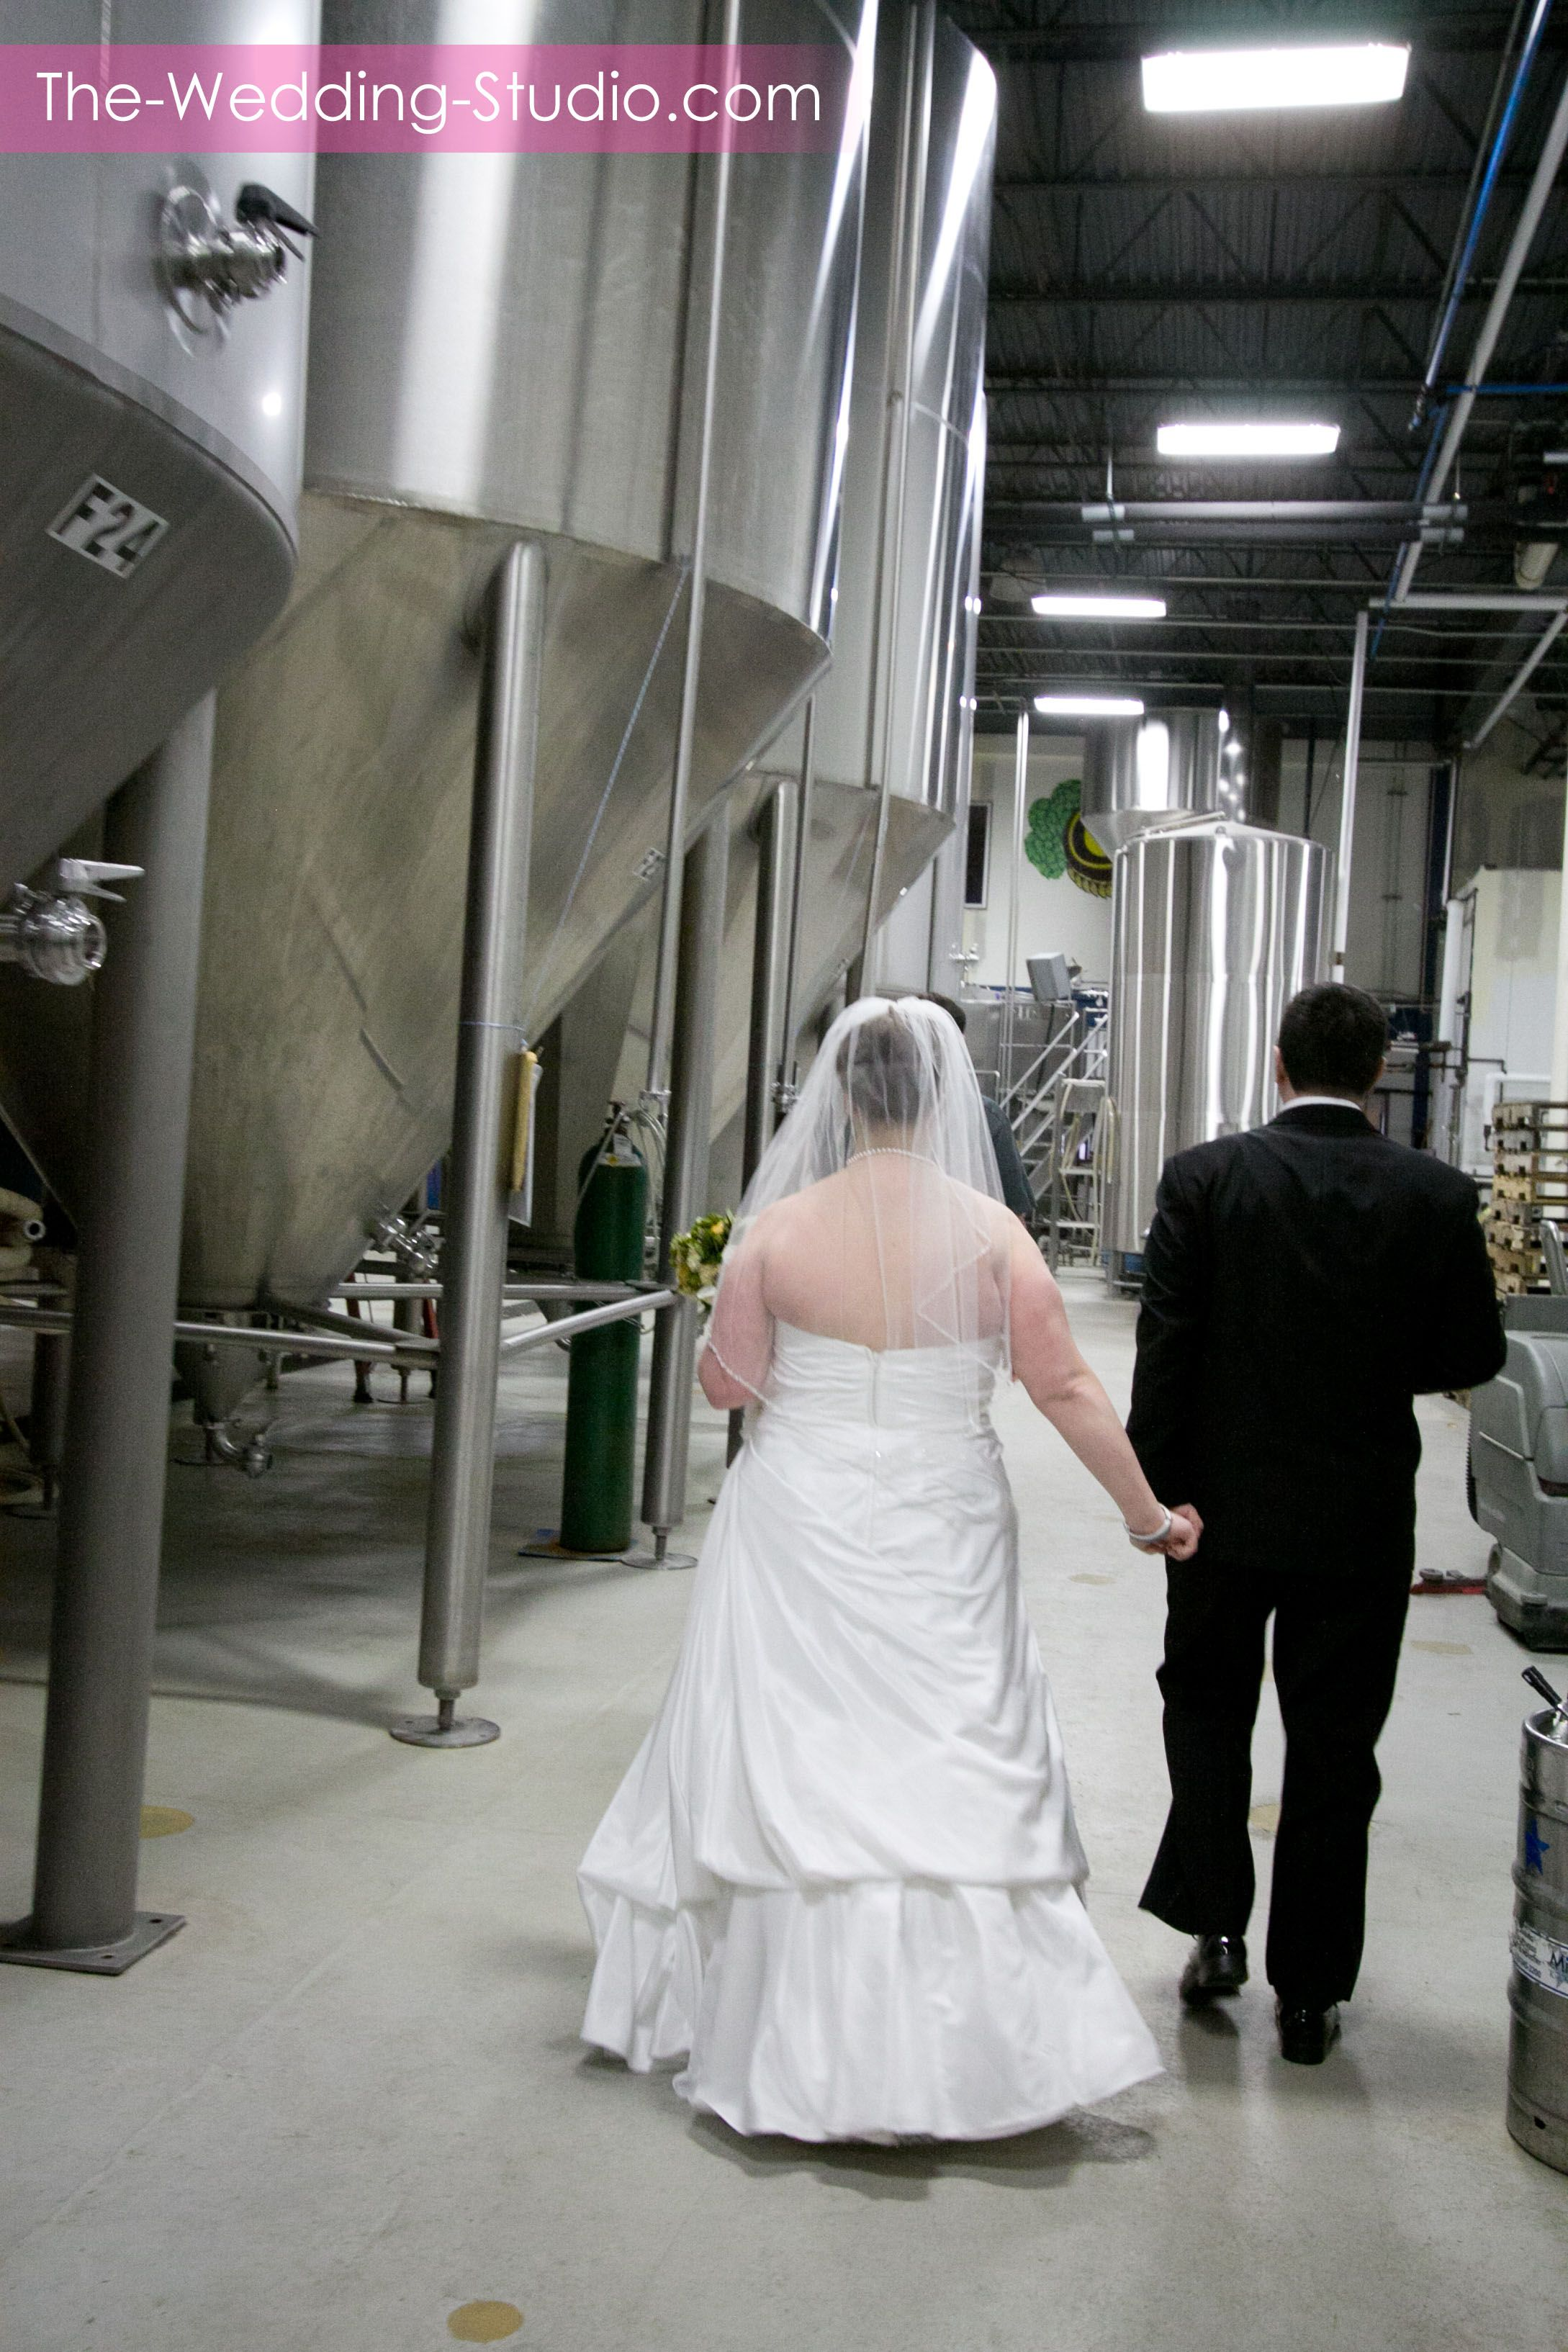 Take a stroll through the Two Brothers Brewery on your